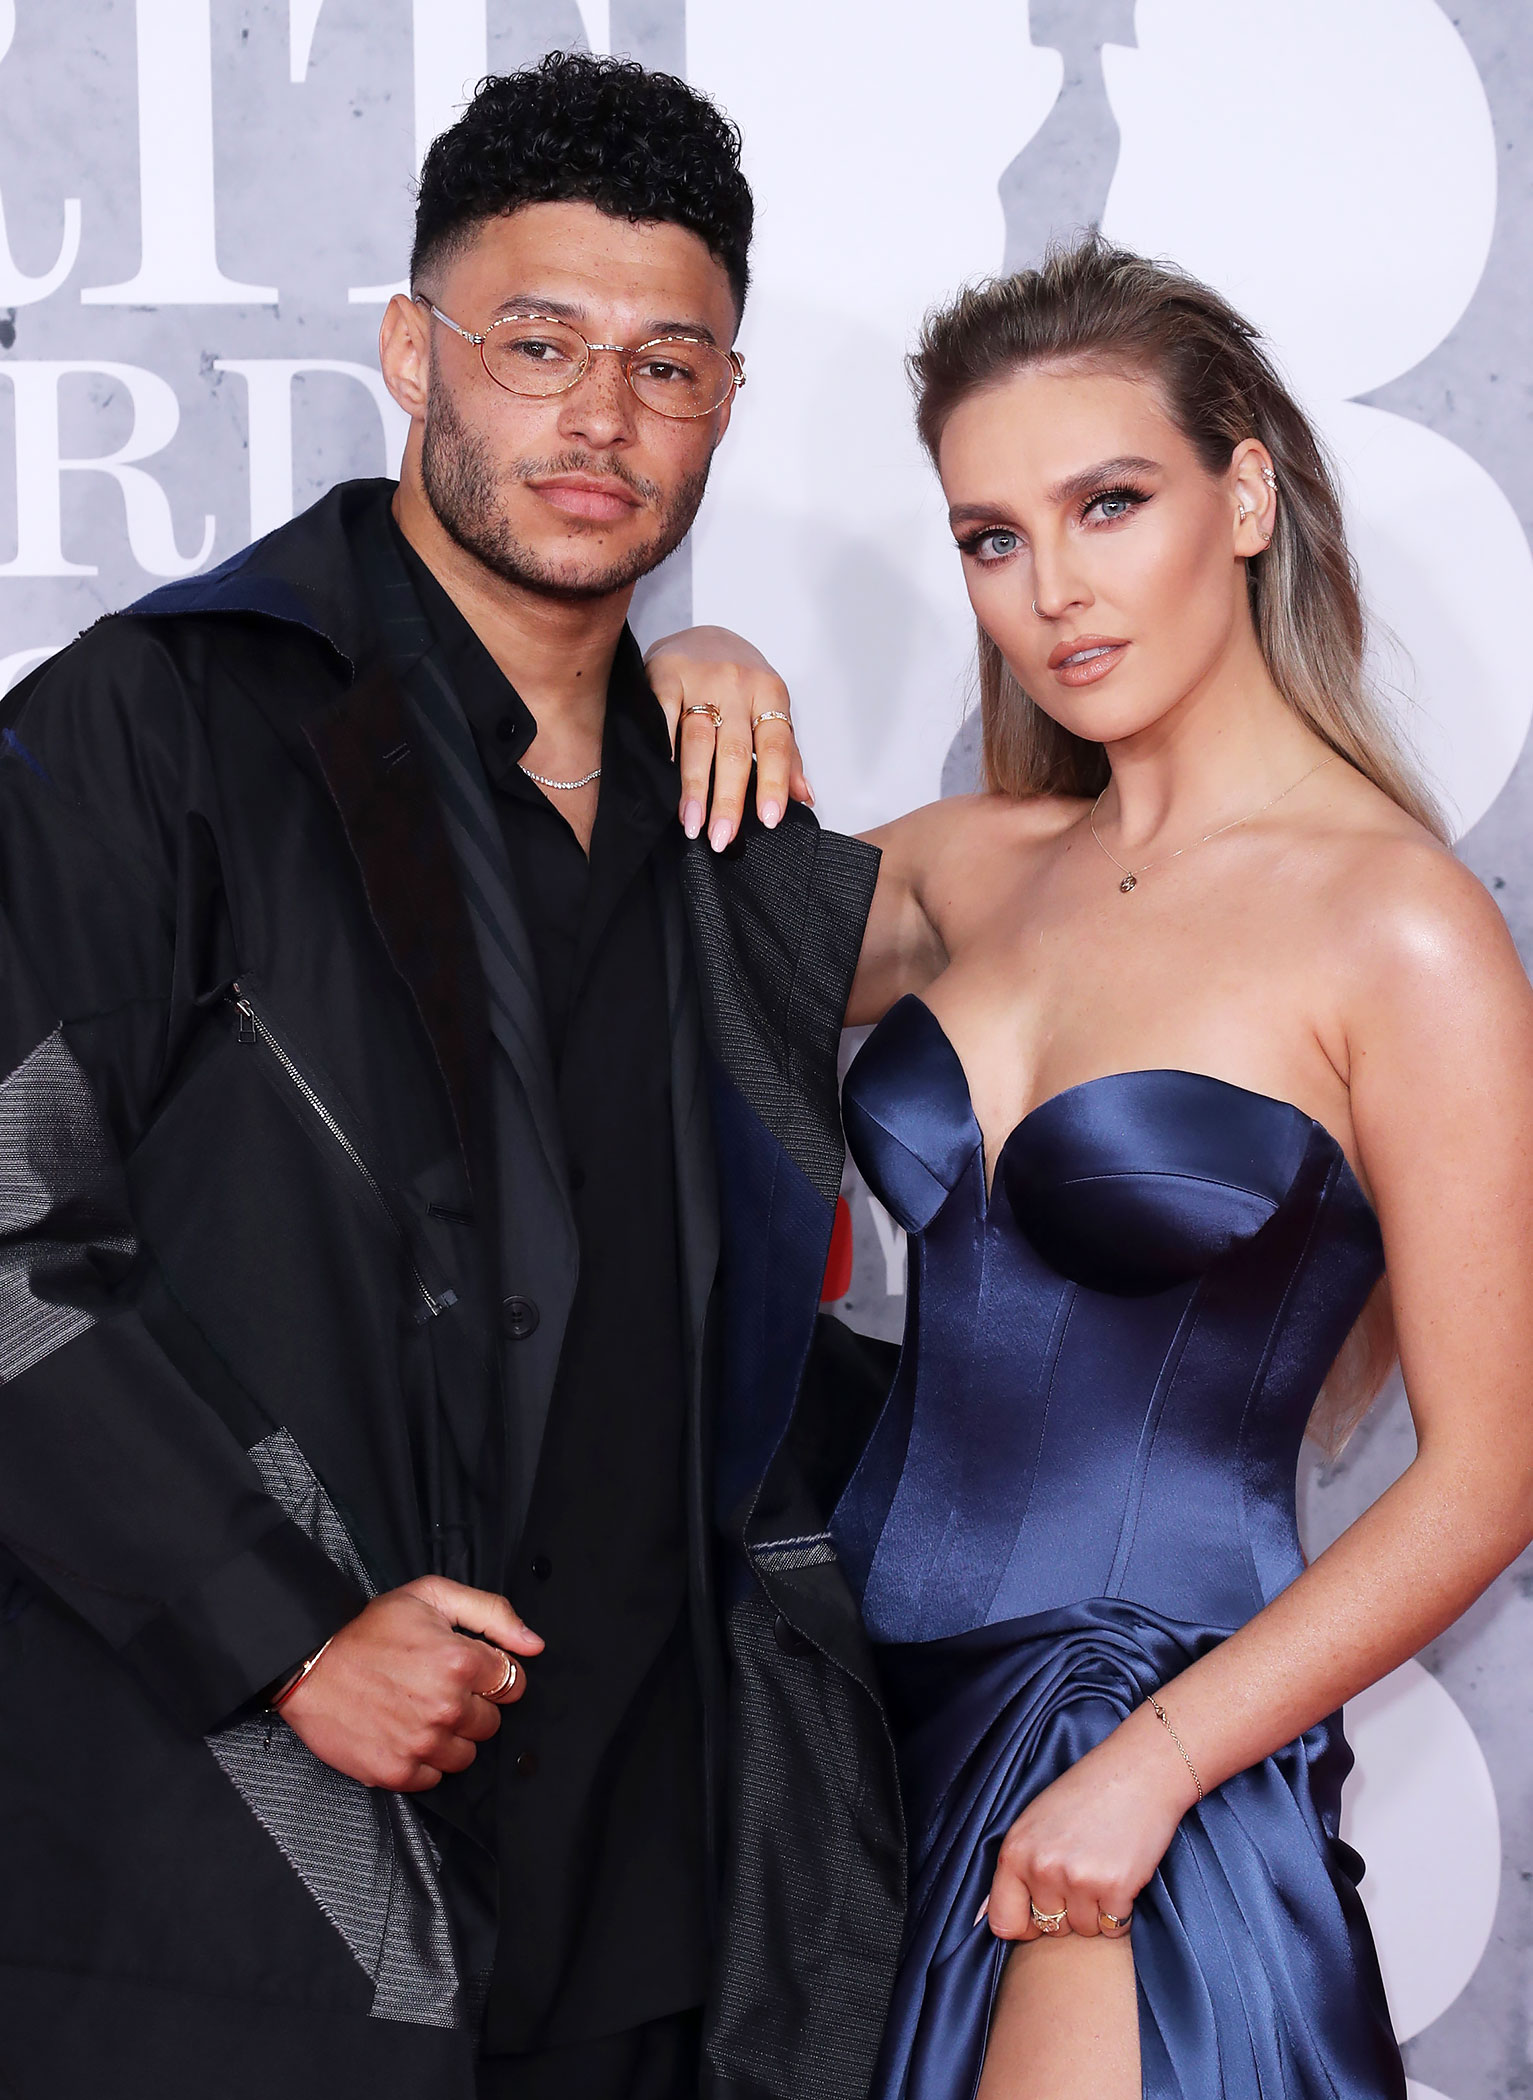 Little Mix's Perrie Edwards Gives Birth, Welcomes 1st Child With Alex Oxlade-Chamberlain